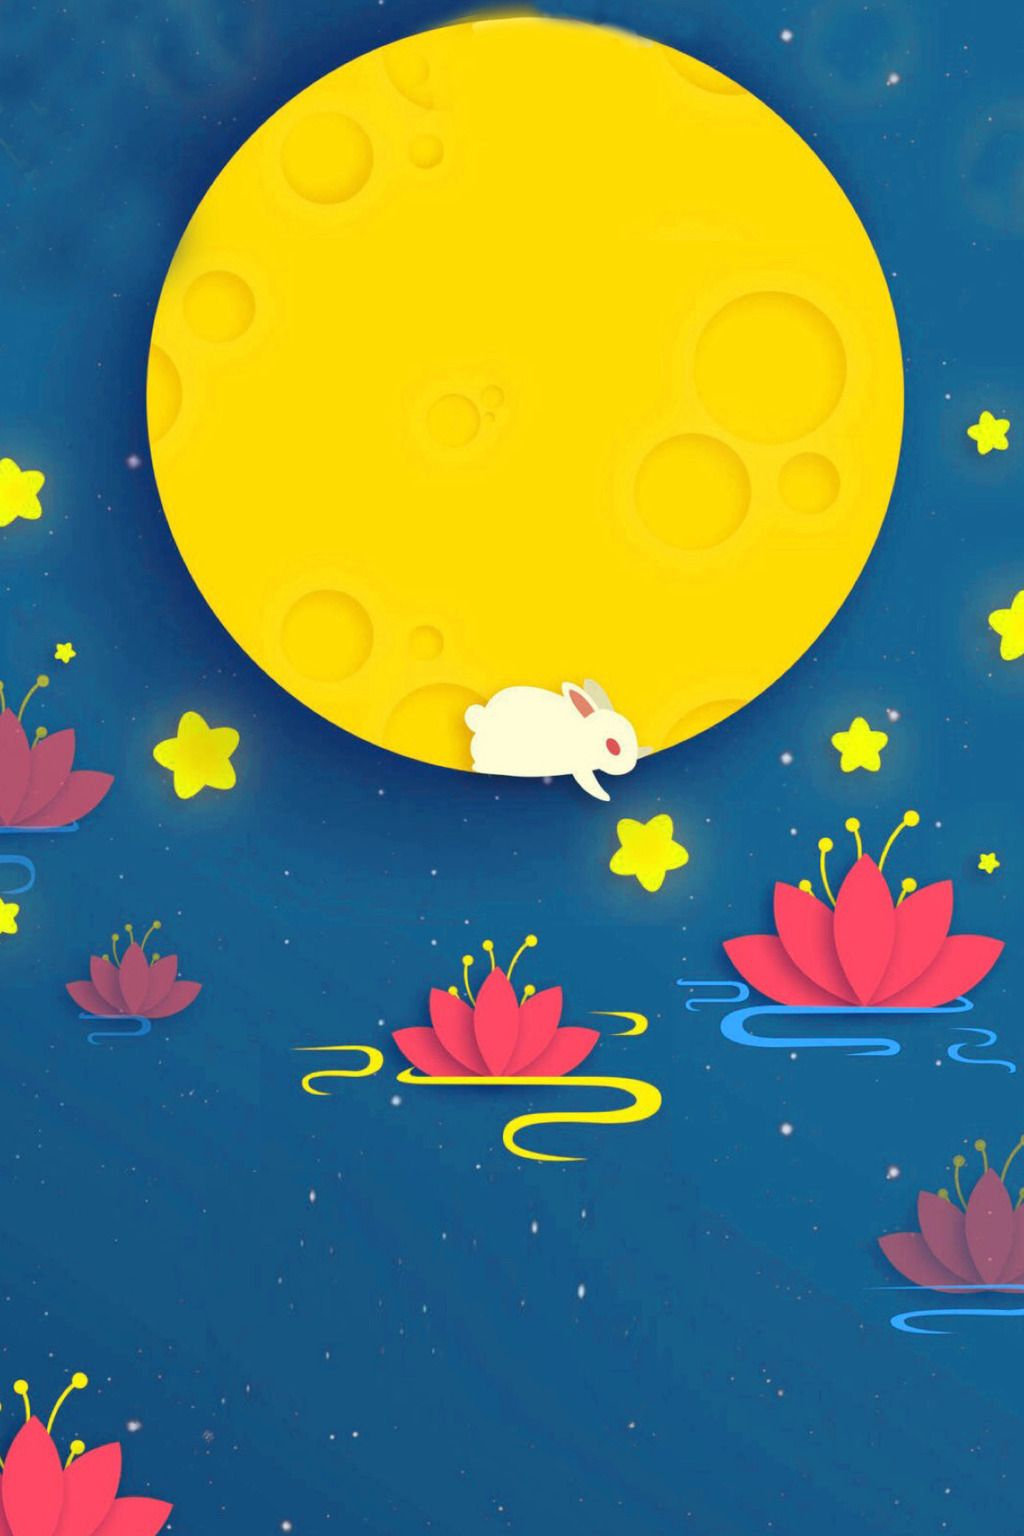 Blue Mid Autumn Festival Background Mid Autumn Festival Moon Cake